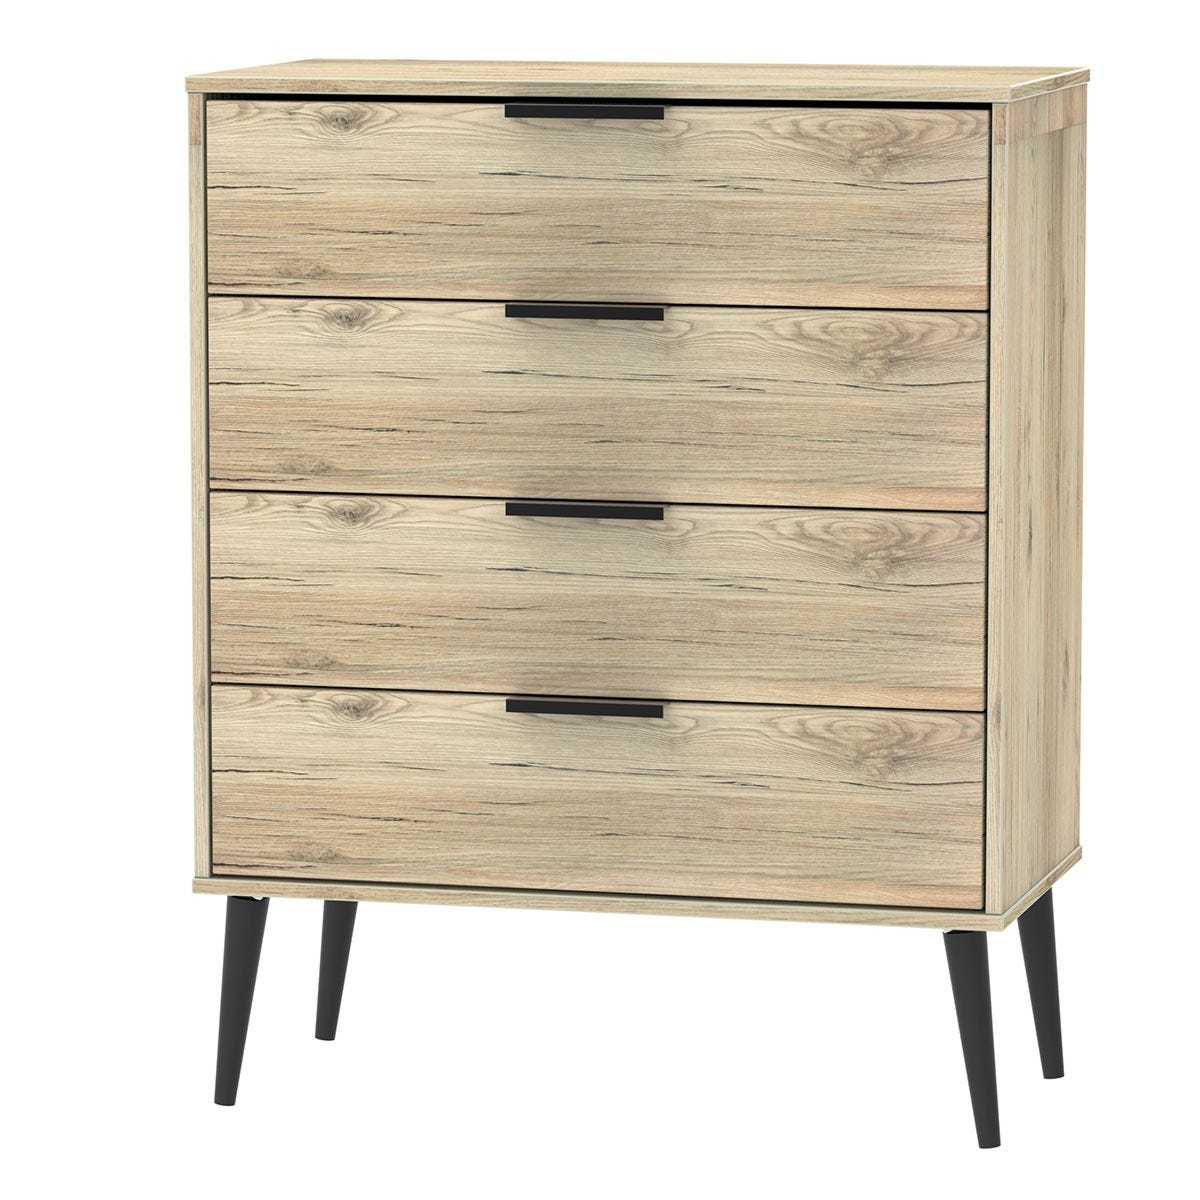 Hirato 4 Drawer Rustic Oak Chest With Black Wooden Legs